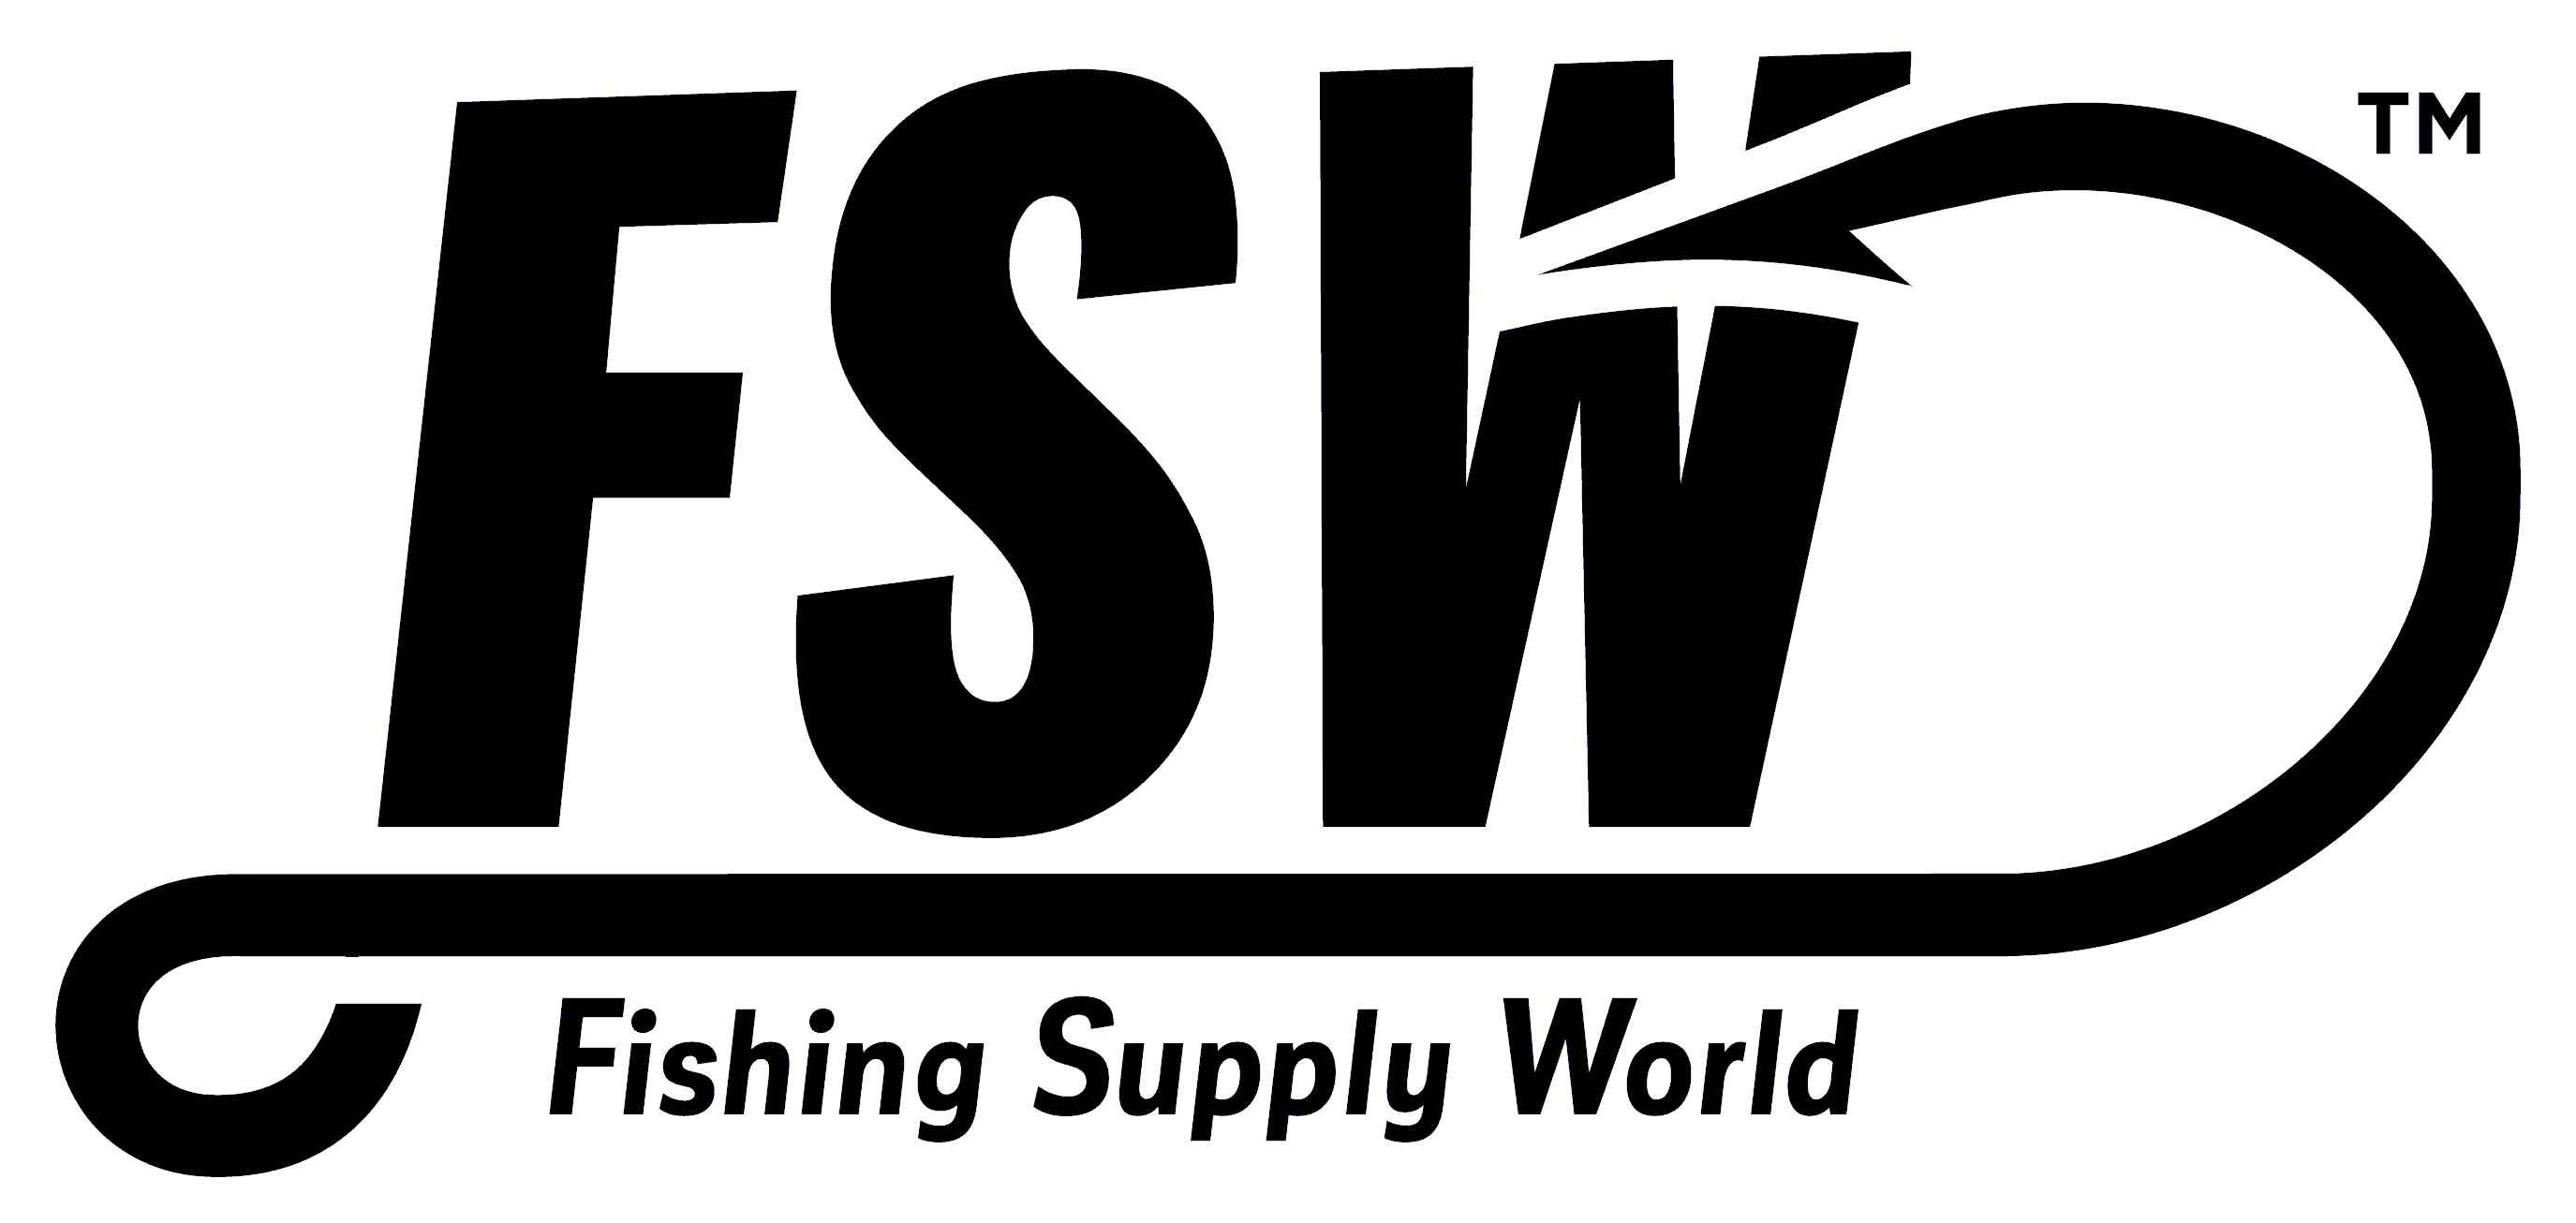 Fishing Supply World